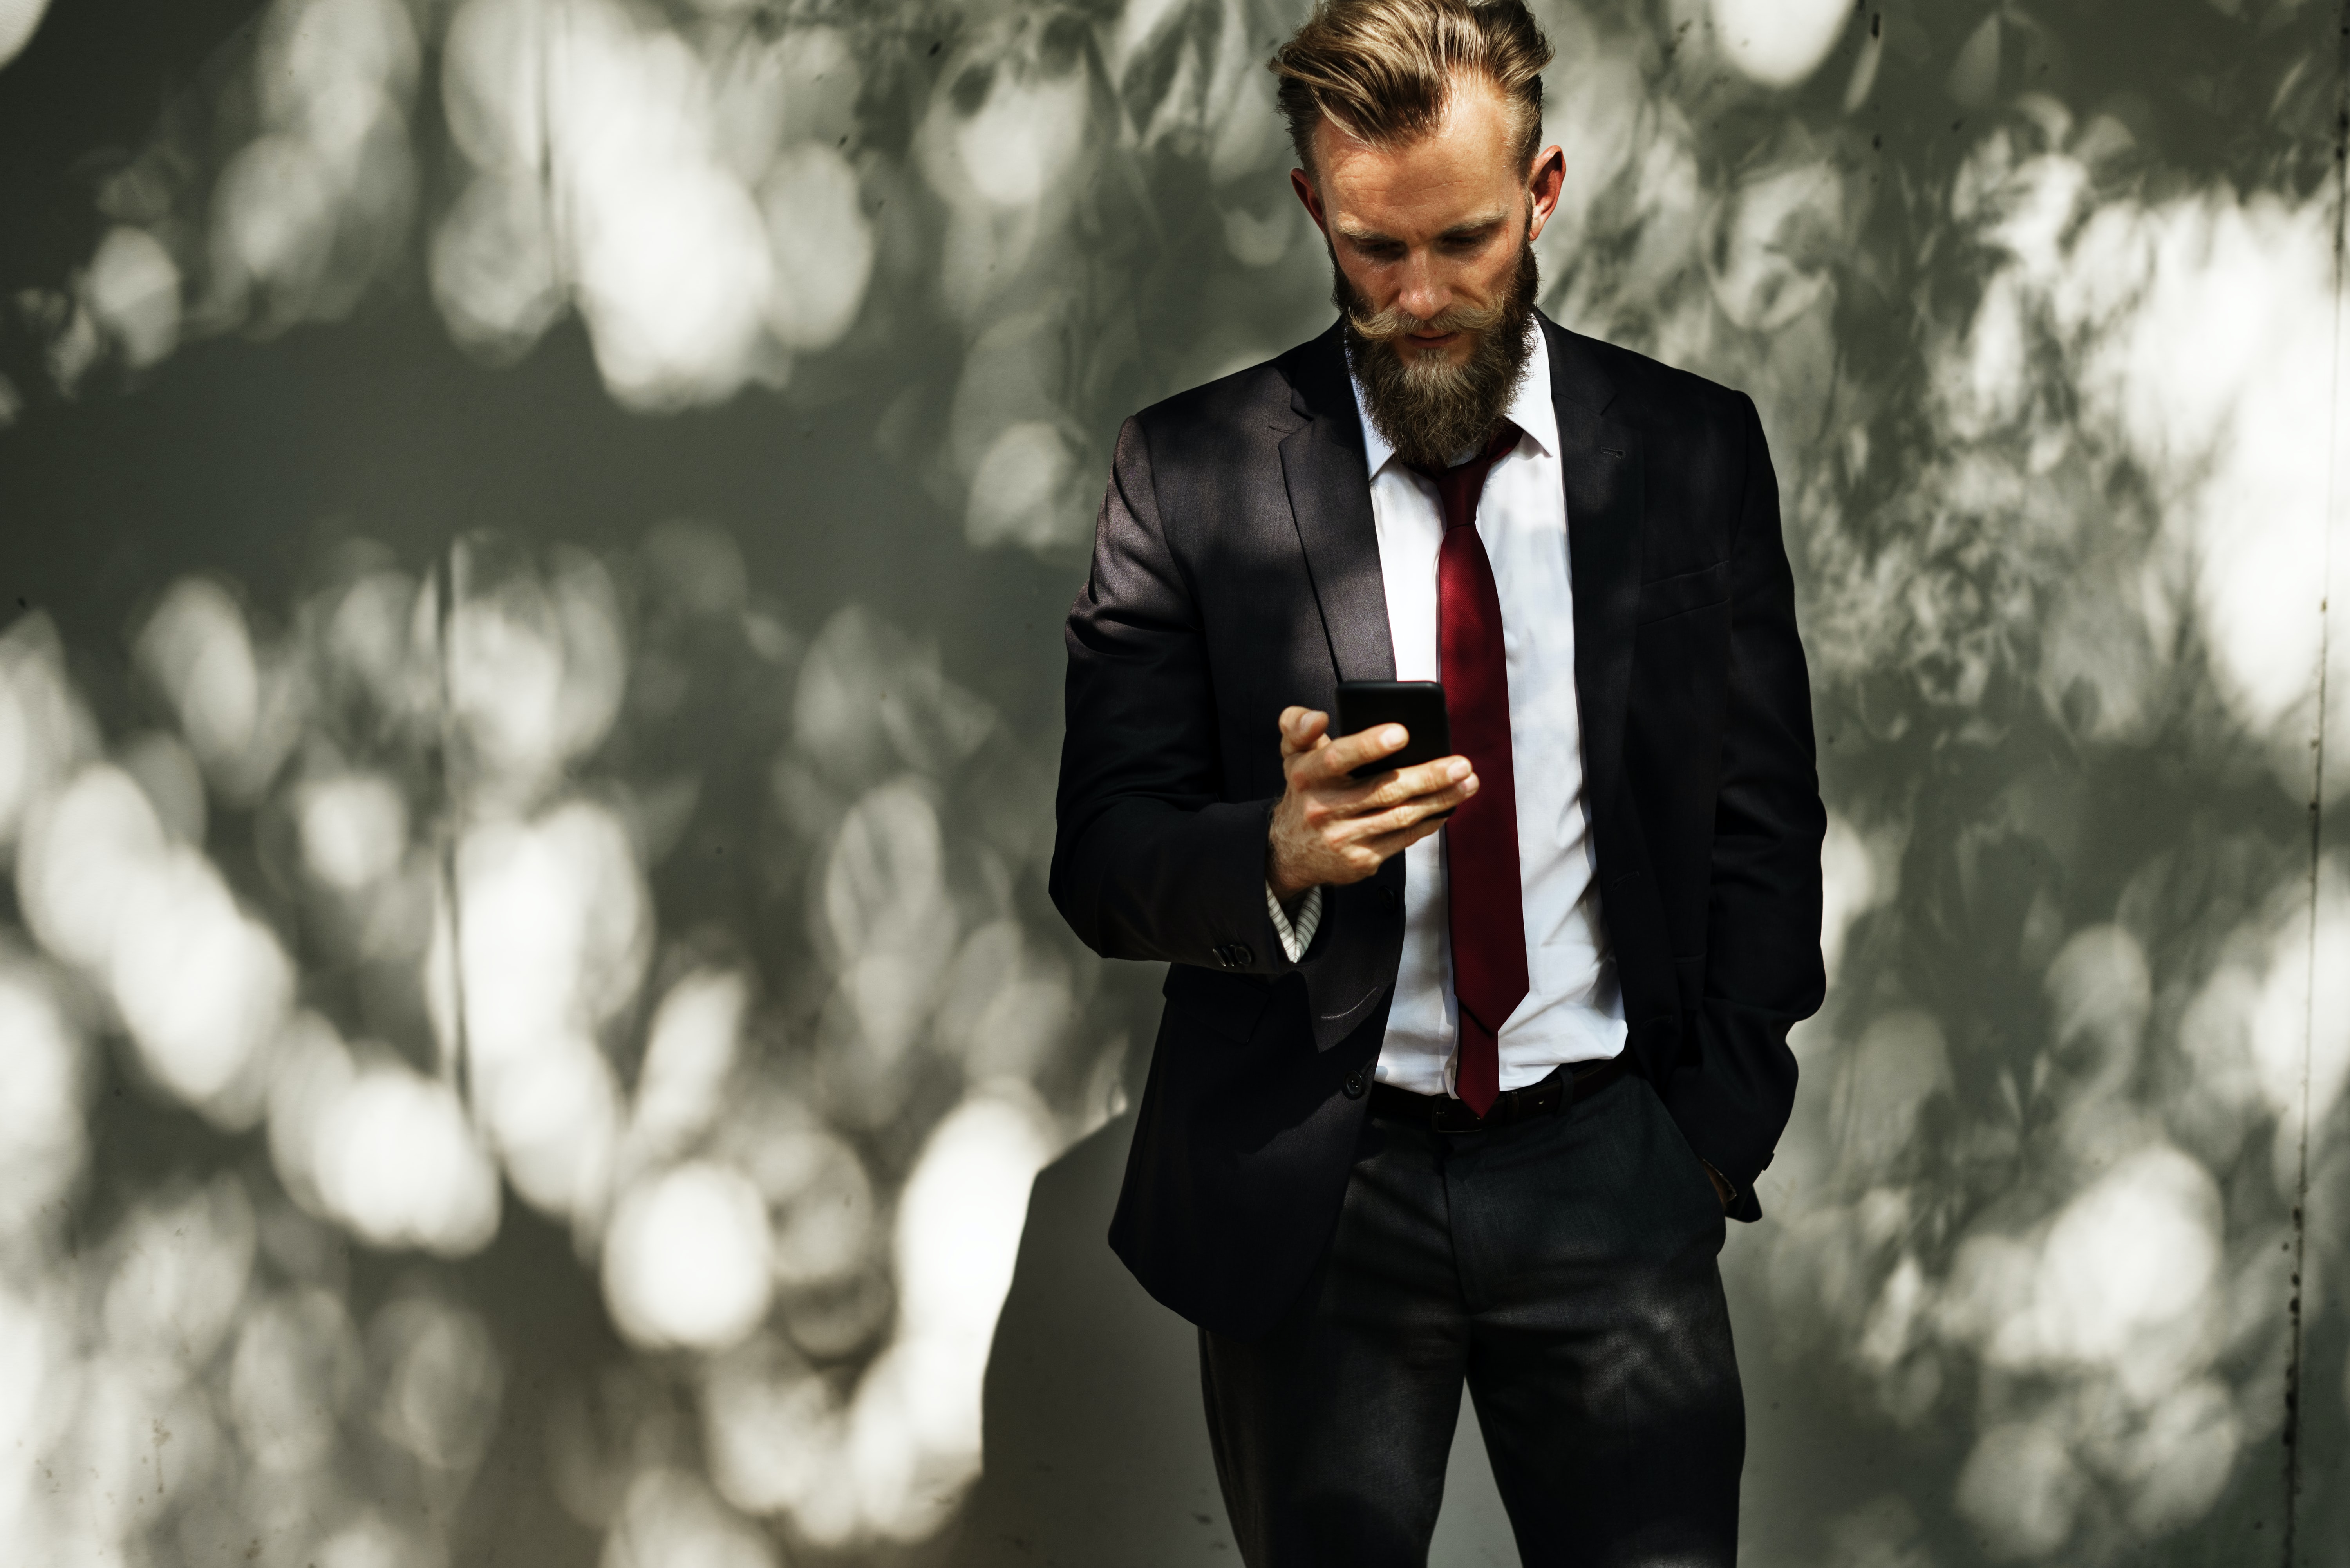 man in suit jacket holding a smartphone